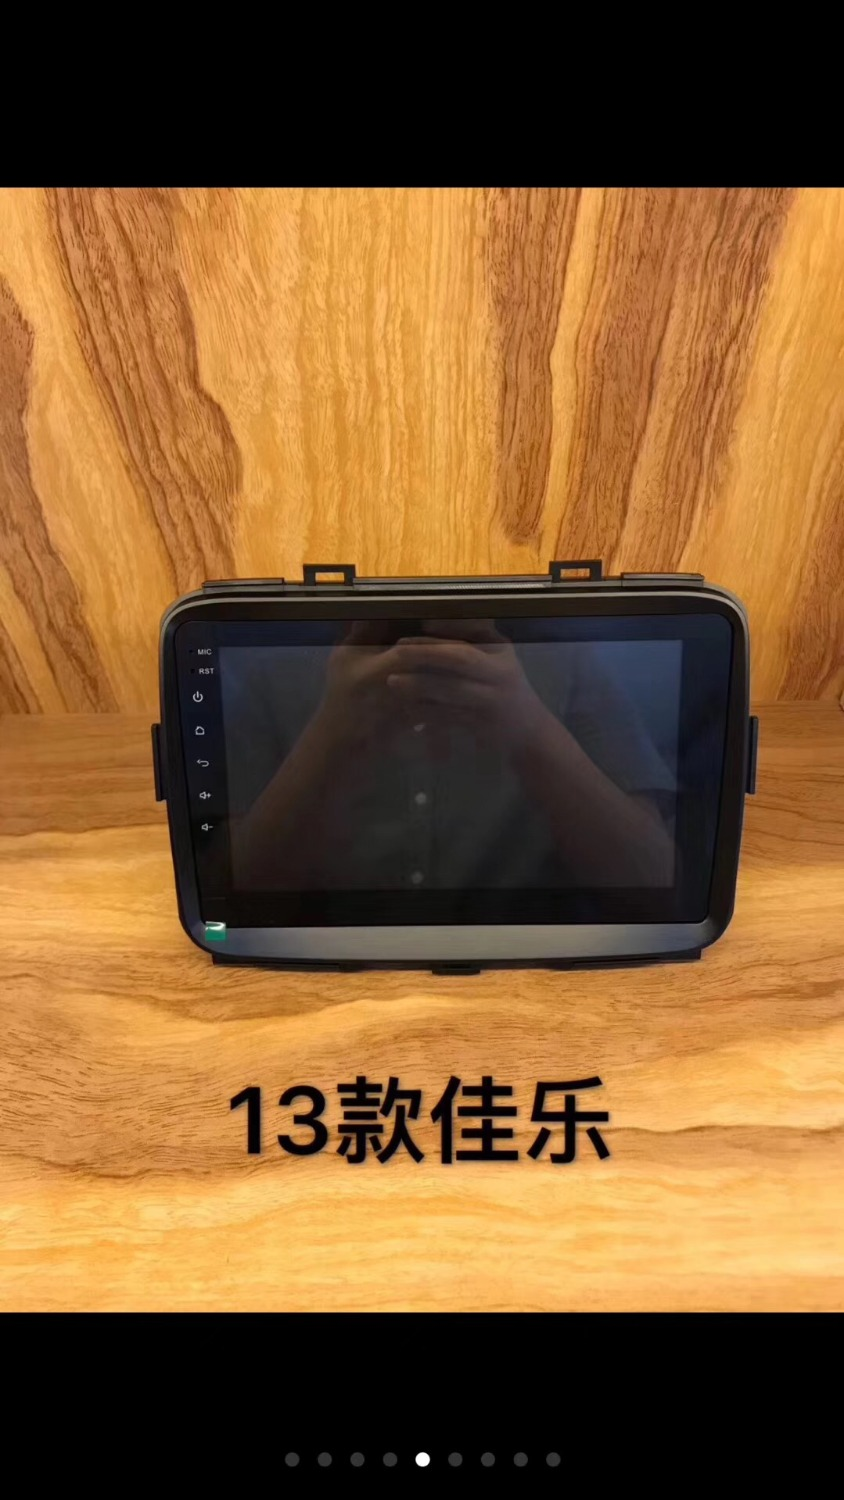 Car Multimedia Player For KIA Carens 2007-2011 Auto Video Player GPS Navigation Radio Android 6.0